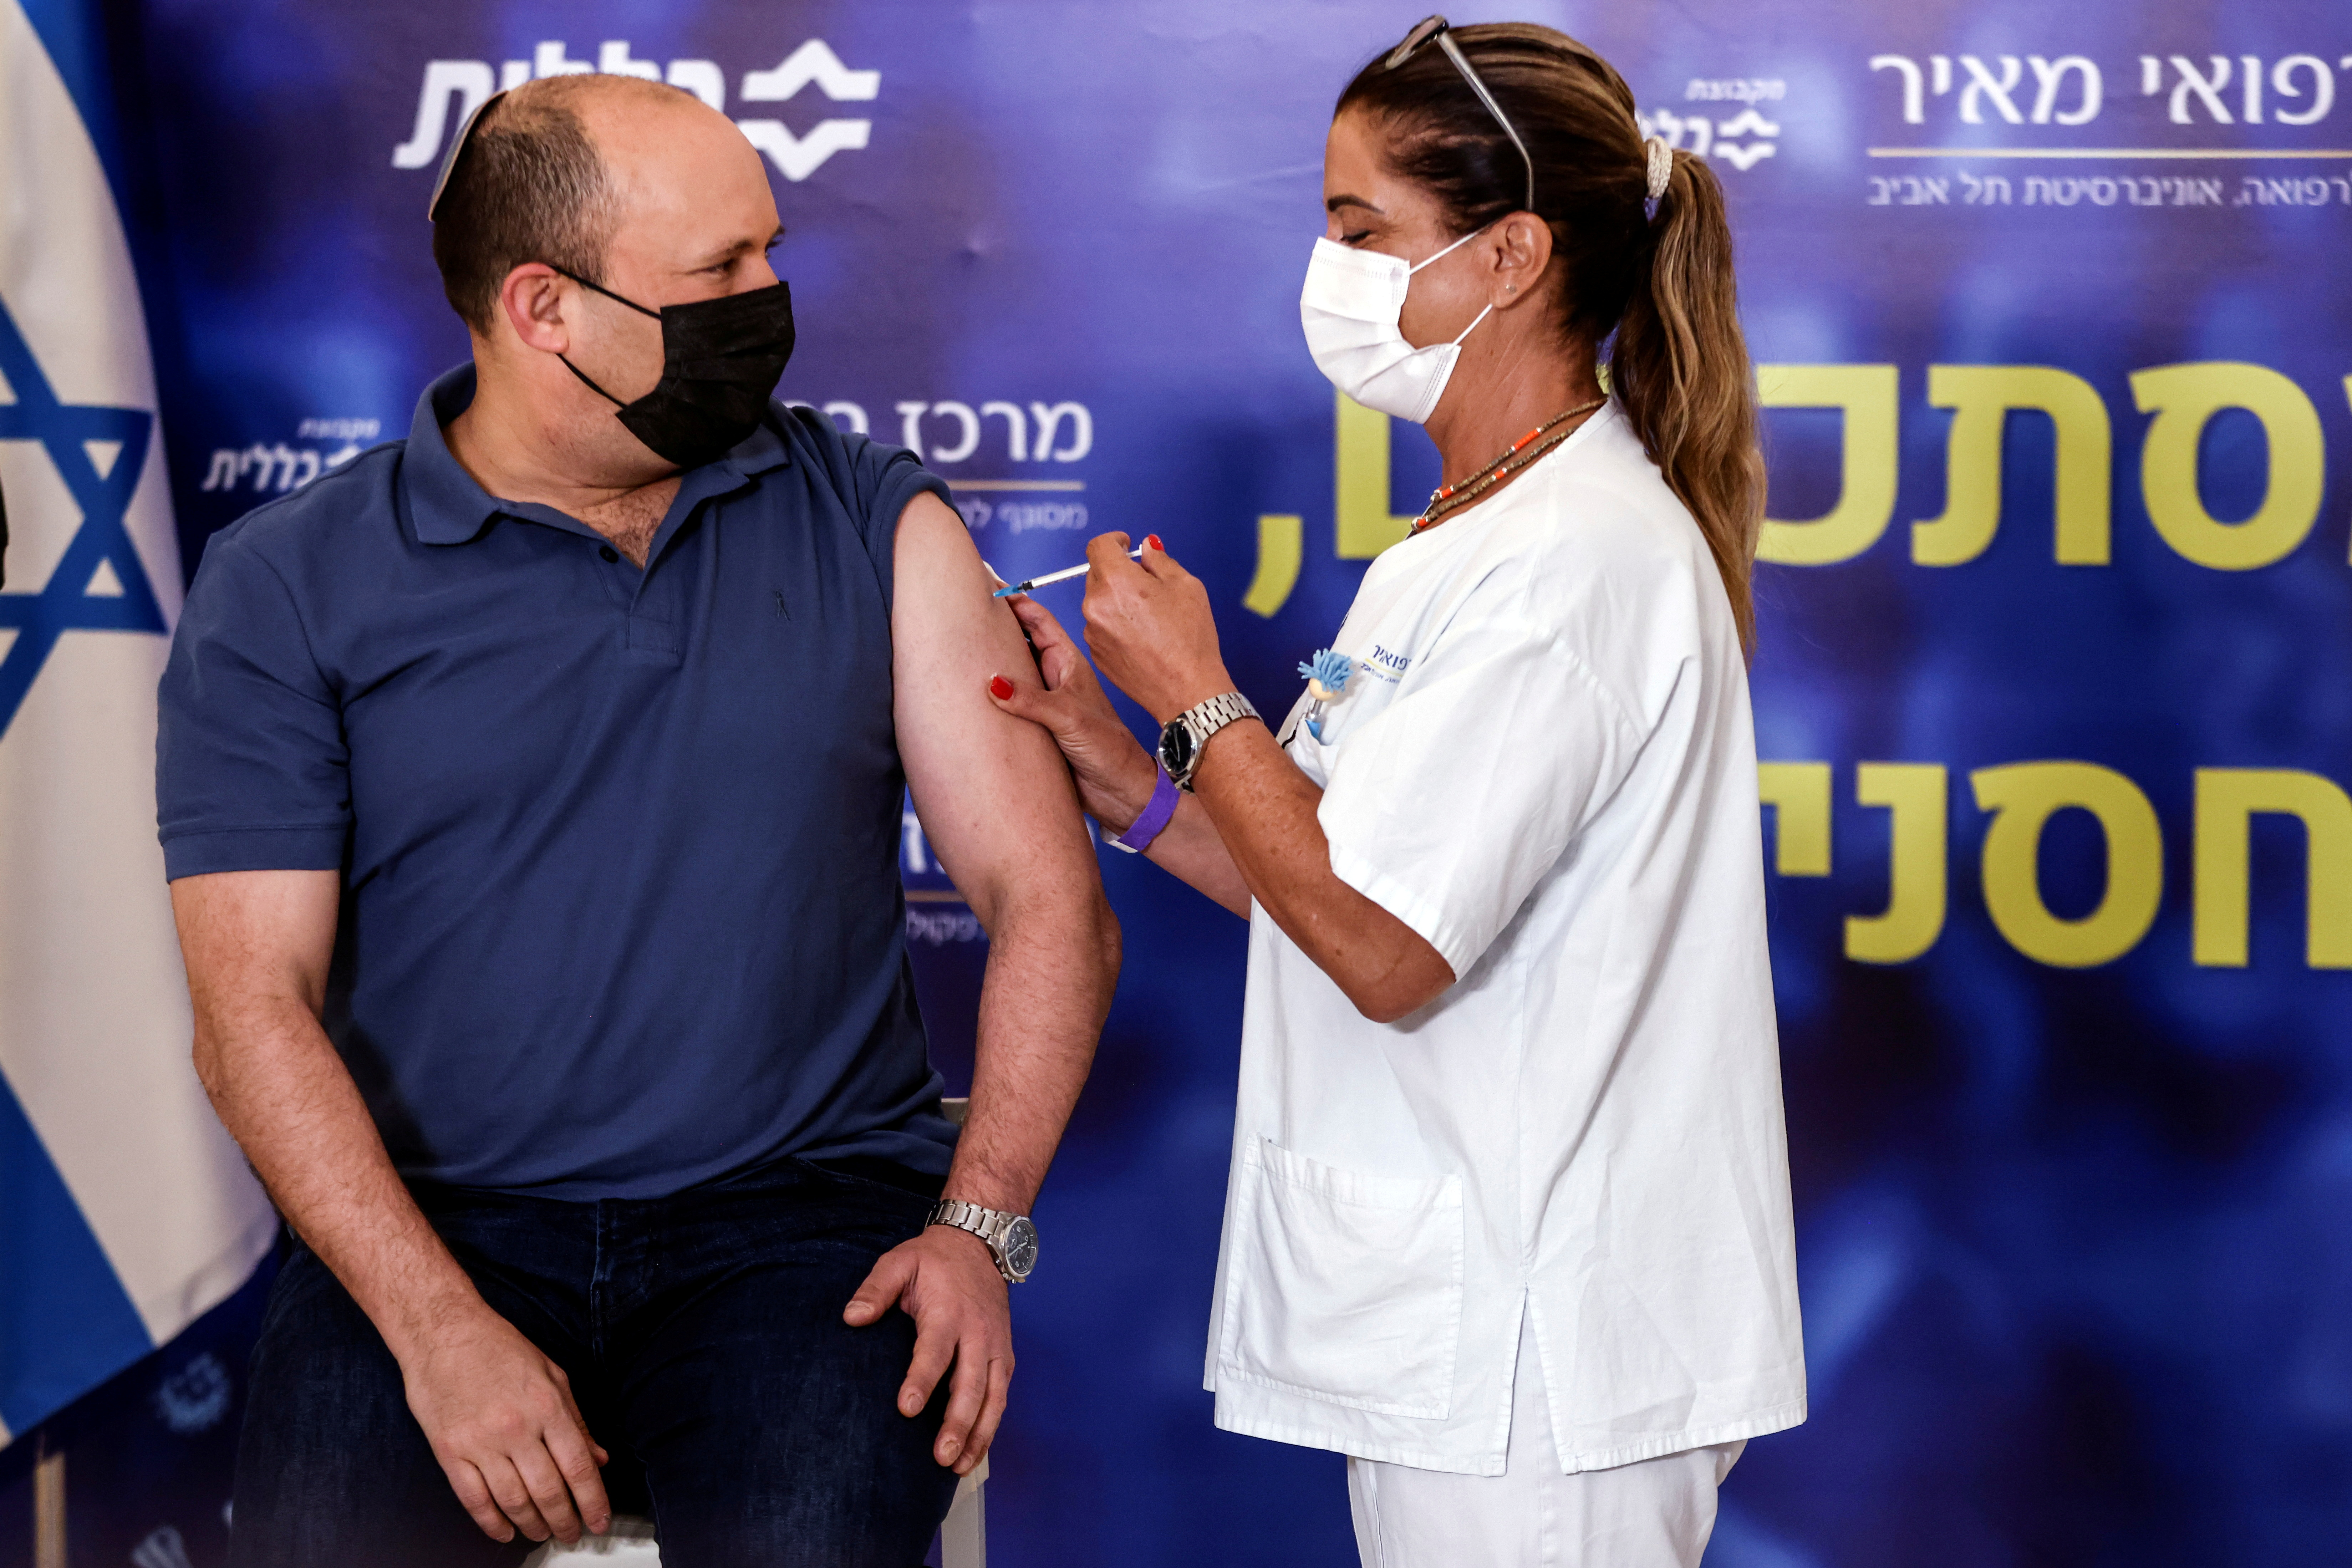 Israeli Prime Minister Naftali Bennett receives a third shot of the coronavirus disease (COVID-19) vaccine as the country launches booster shots for over 40 year-olds, in Kfar Saba, Israel August 20, 2021. REUTERS/Ronen Zvulun/File Photo